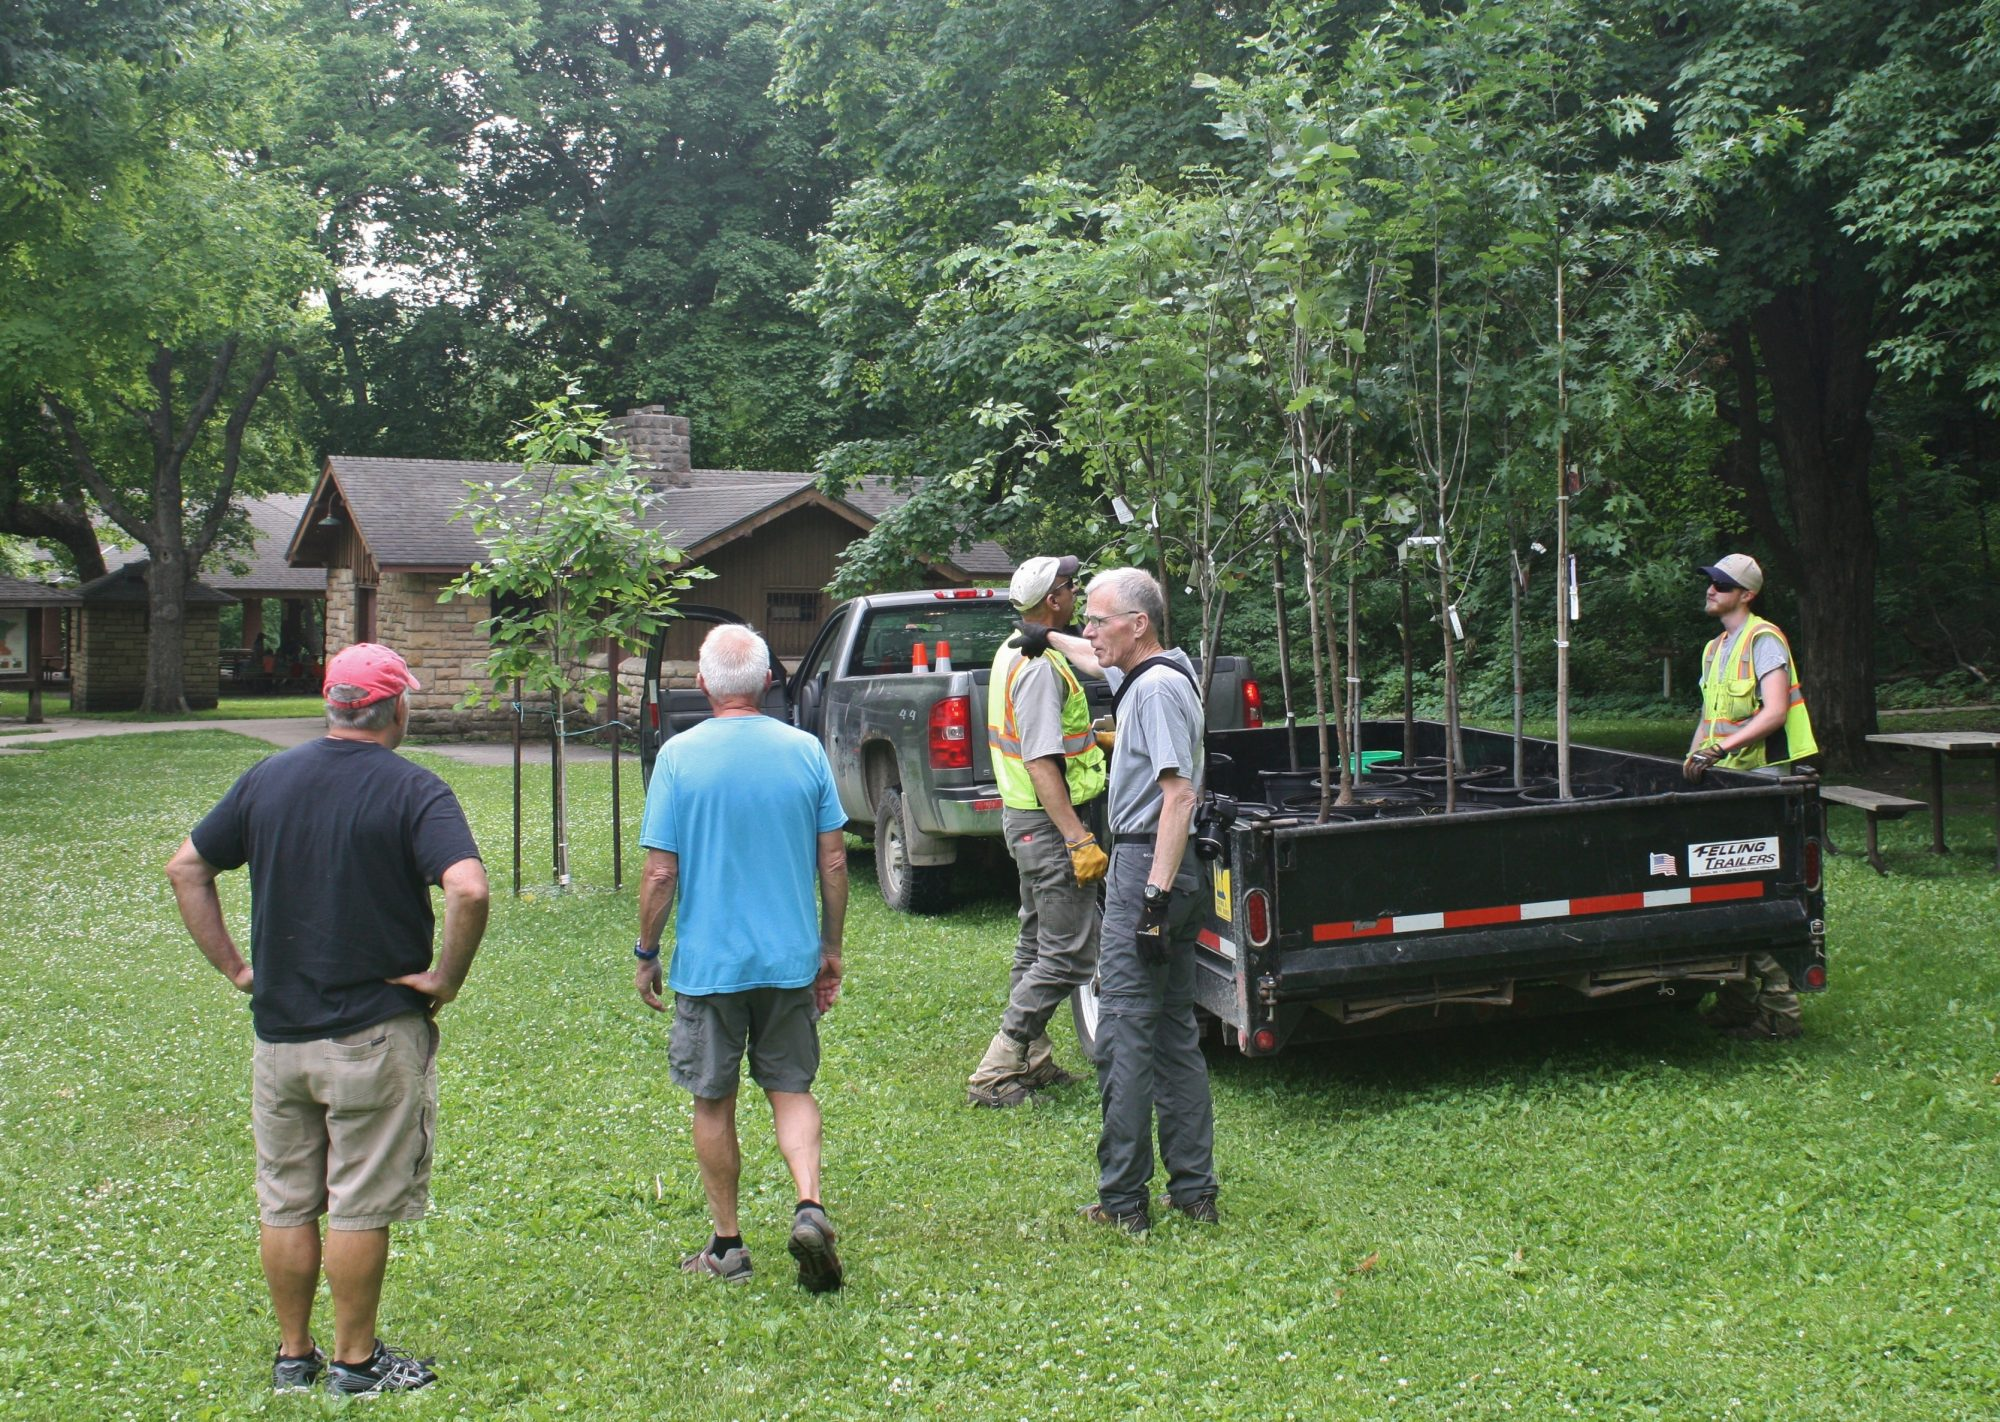 volunteers get ready to unload trees from trailer